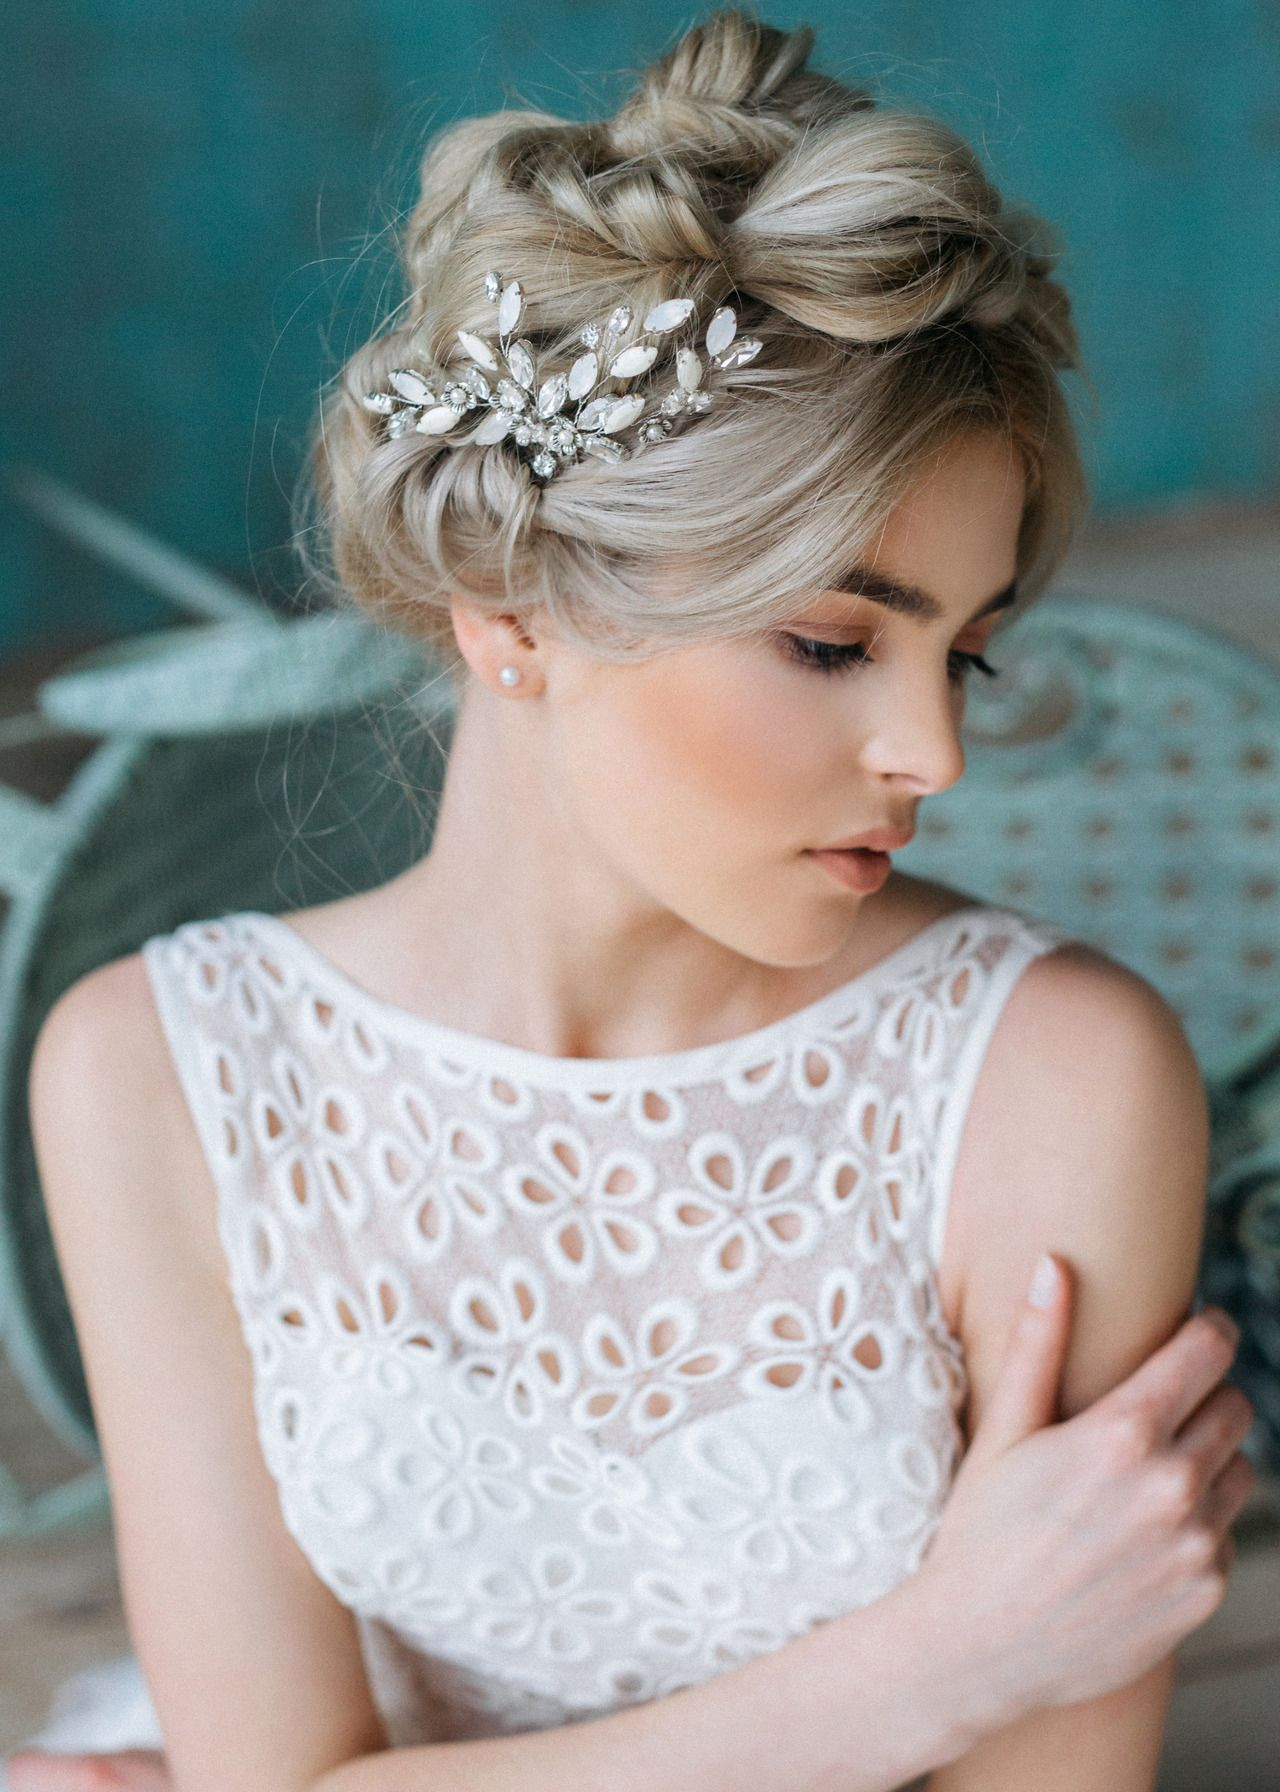 an interview with couture bridal headpieces & accessories designer